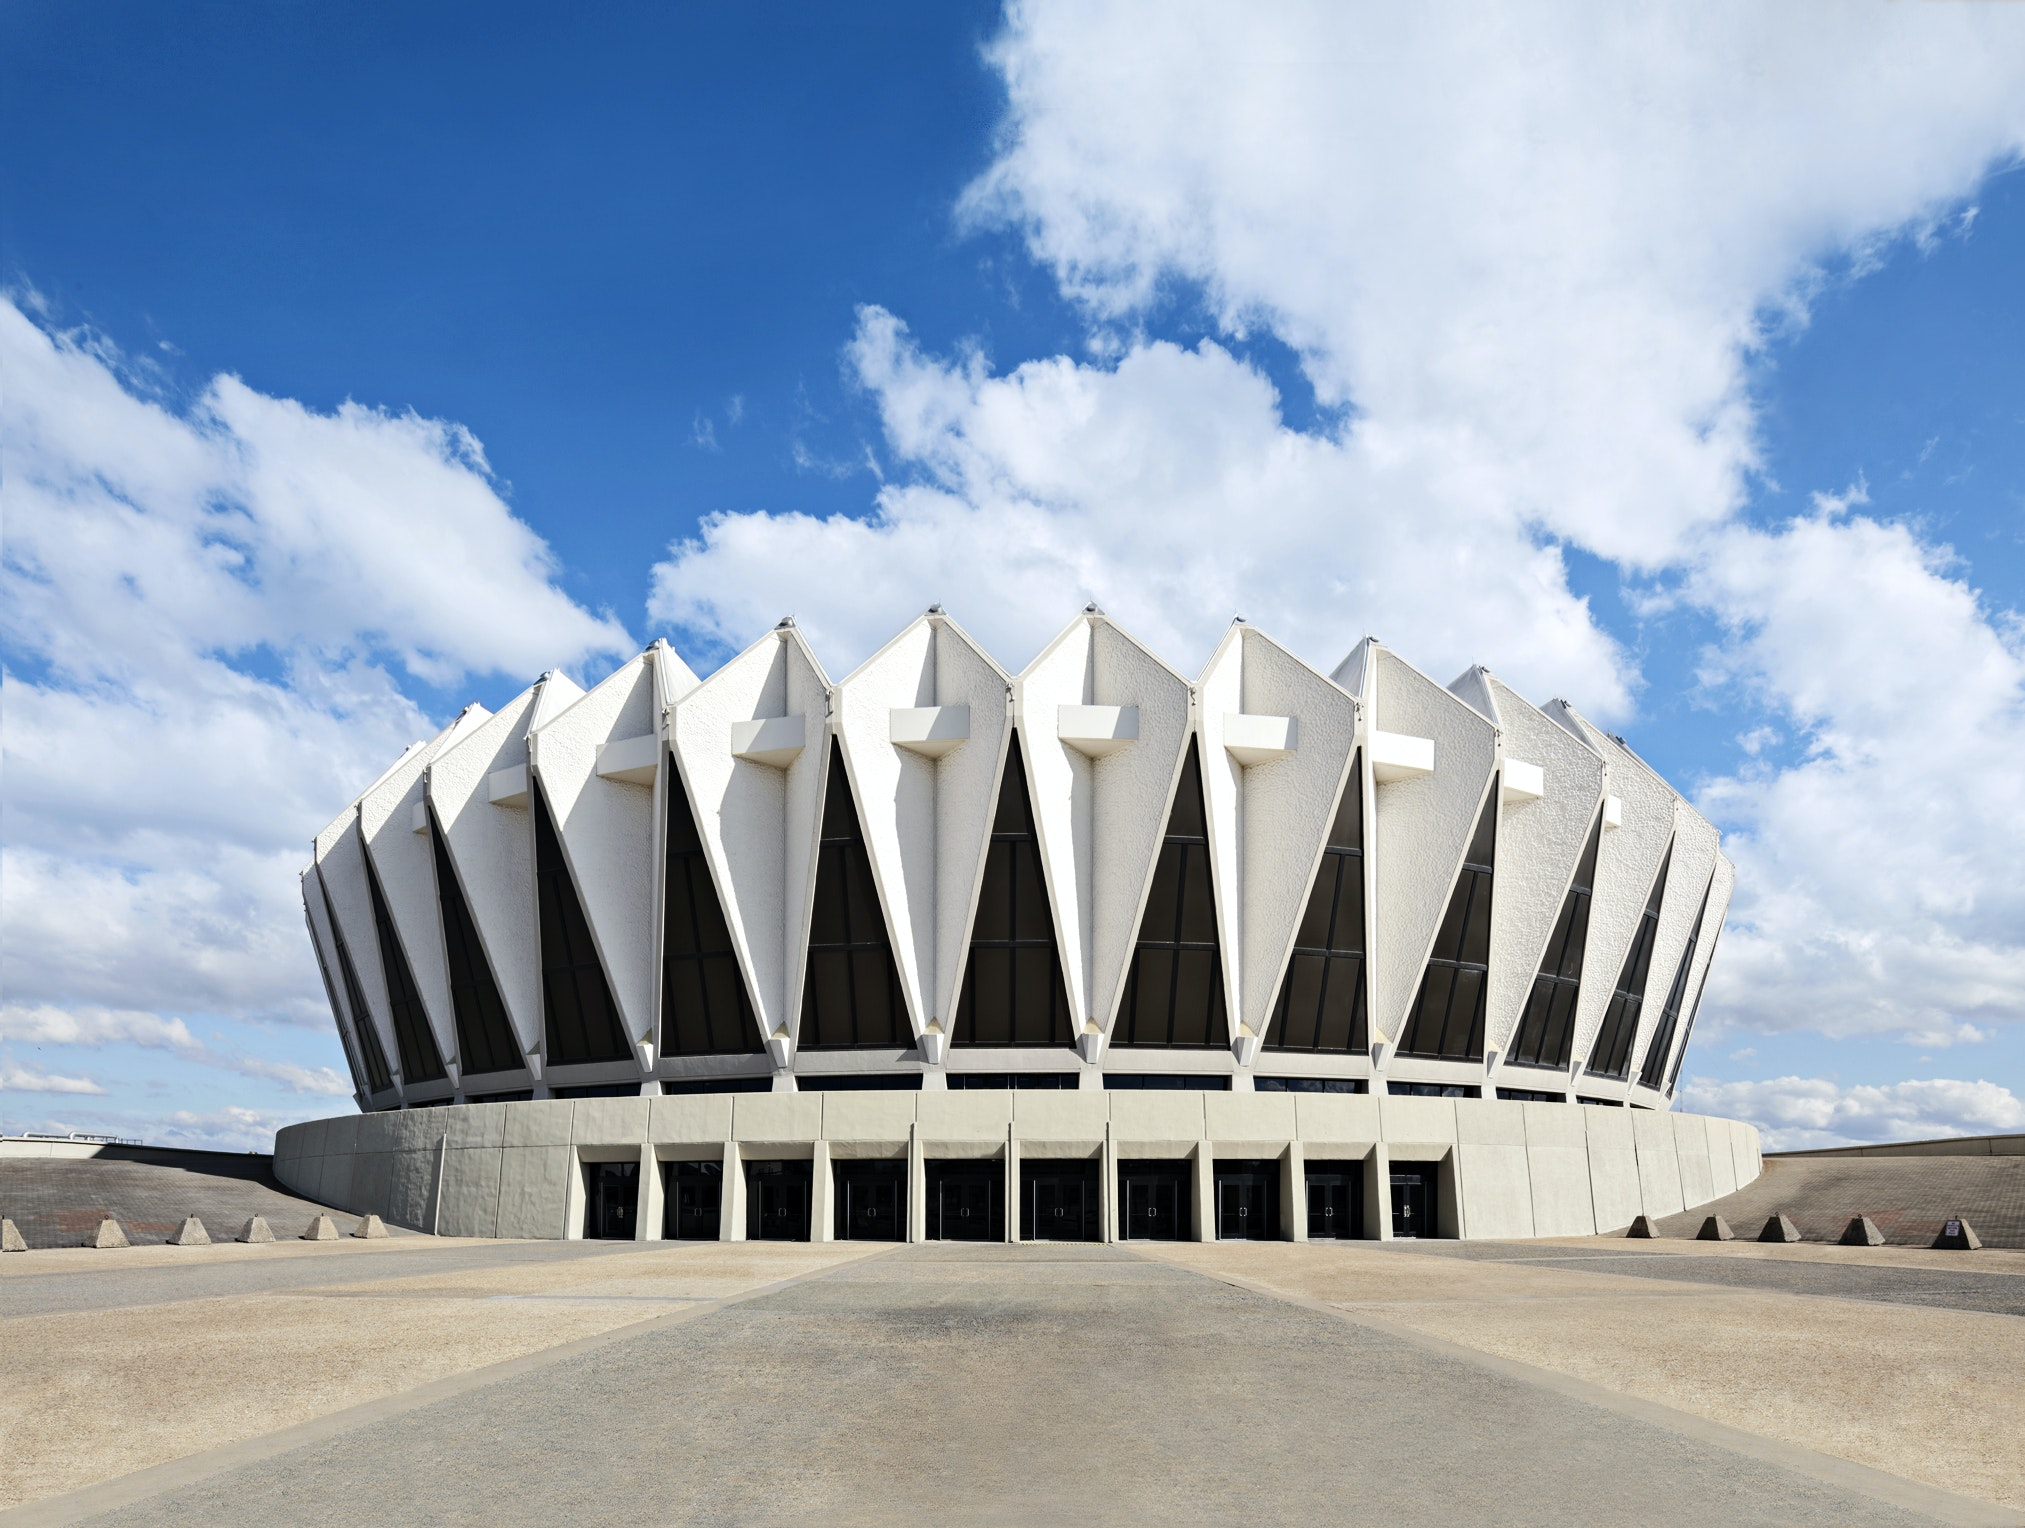 Construction of the Hampton Coliseum spurred commercial development of the area.